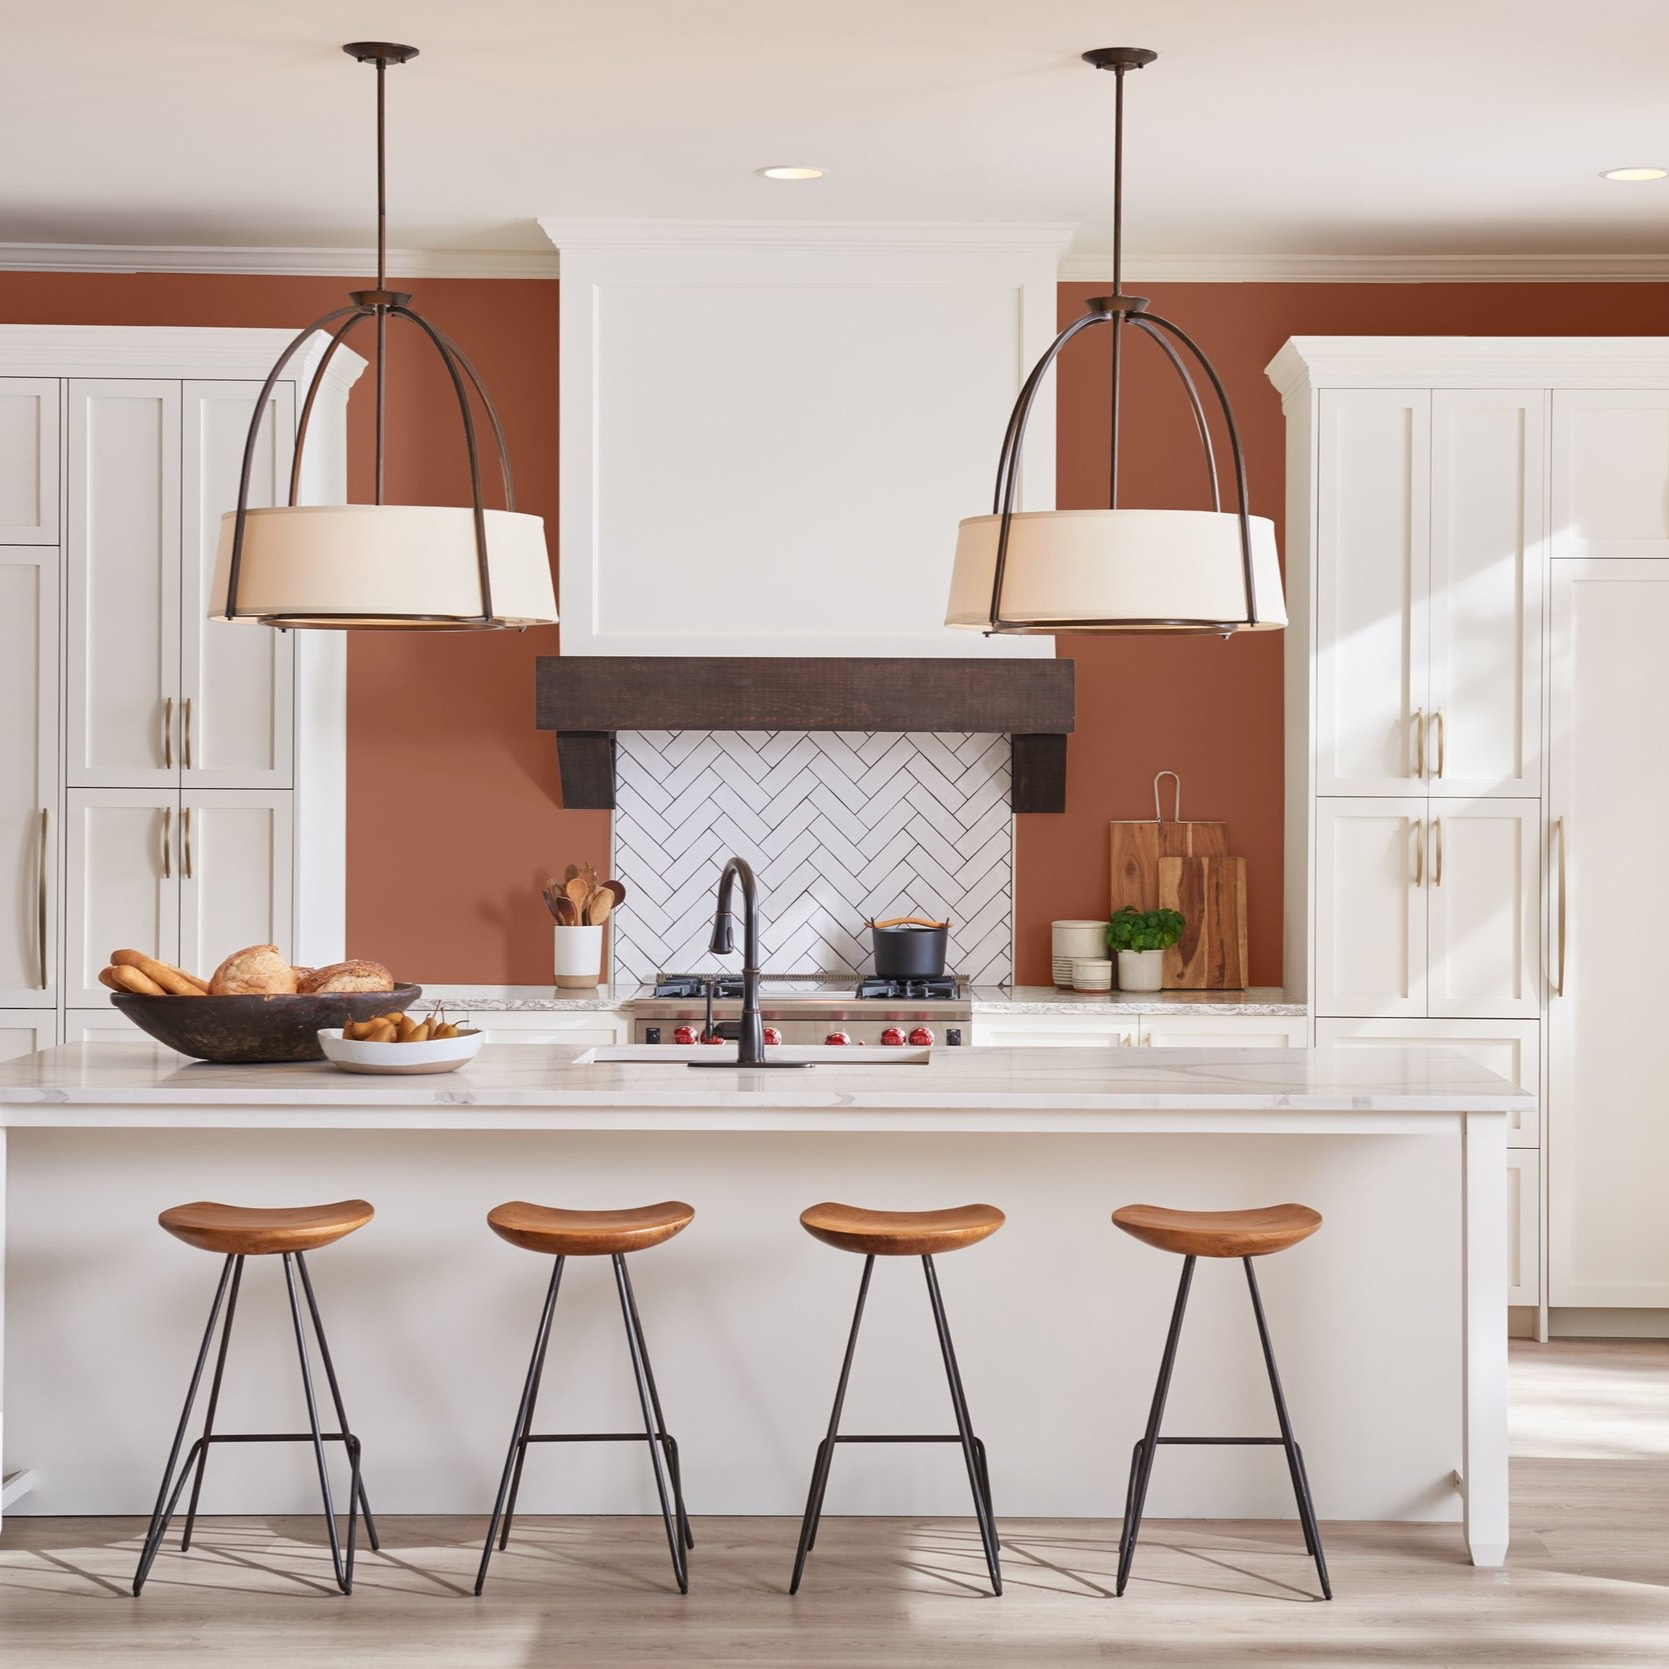 cavern-clay-kitchen-color-of-the-year-1536763329.jpg